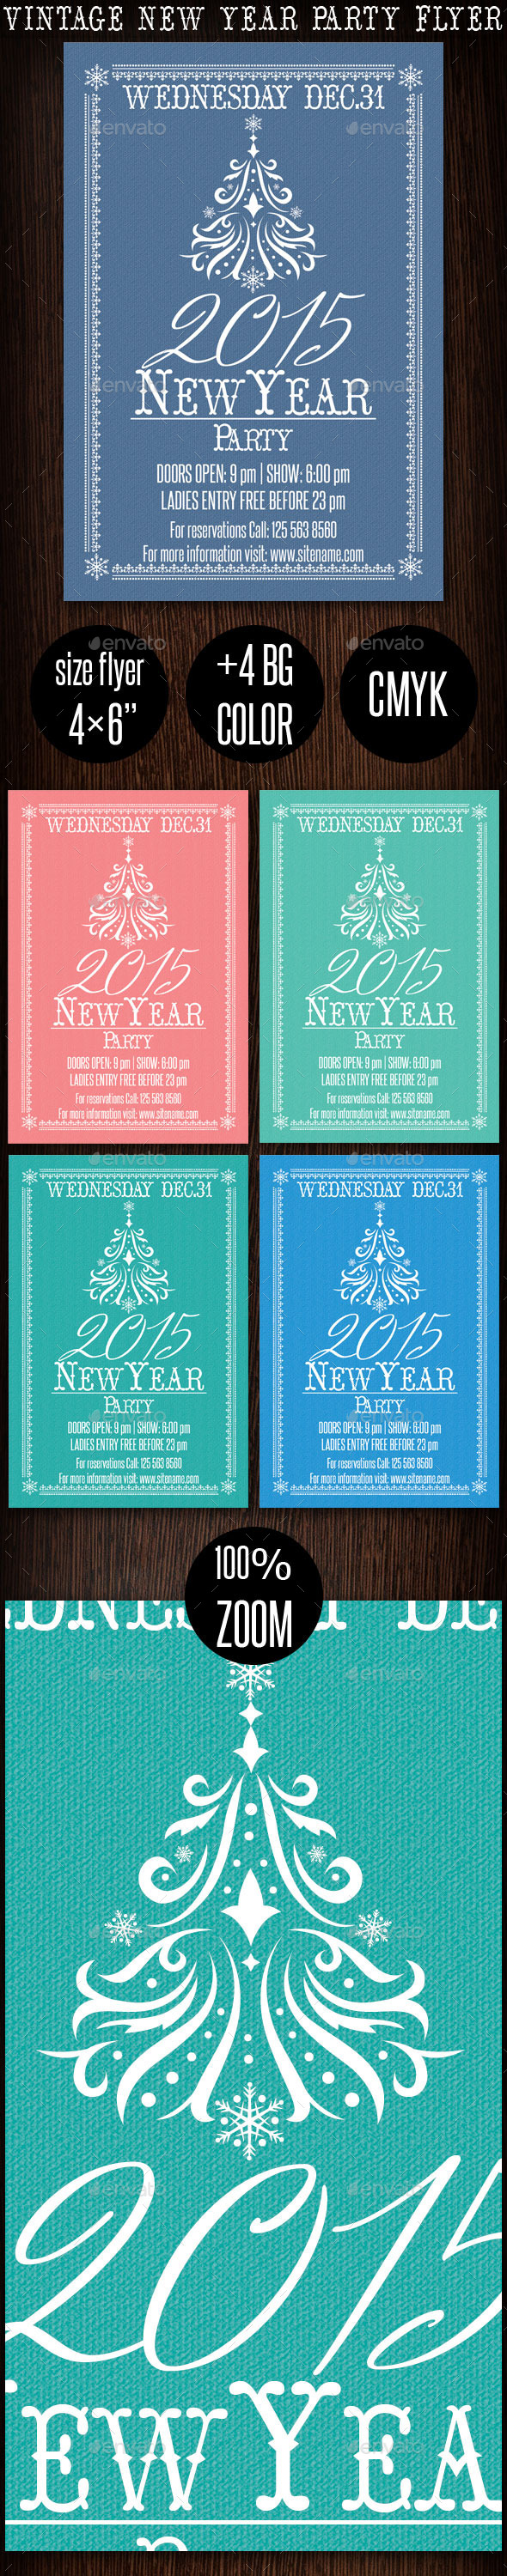 Vintage New Year Party Flyer 2015 - Clubs & Parties Events